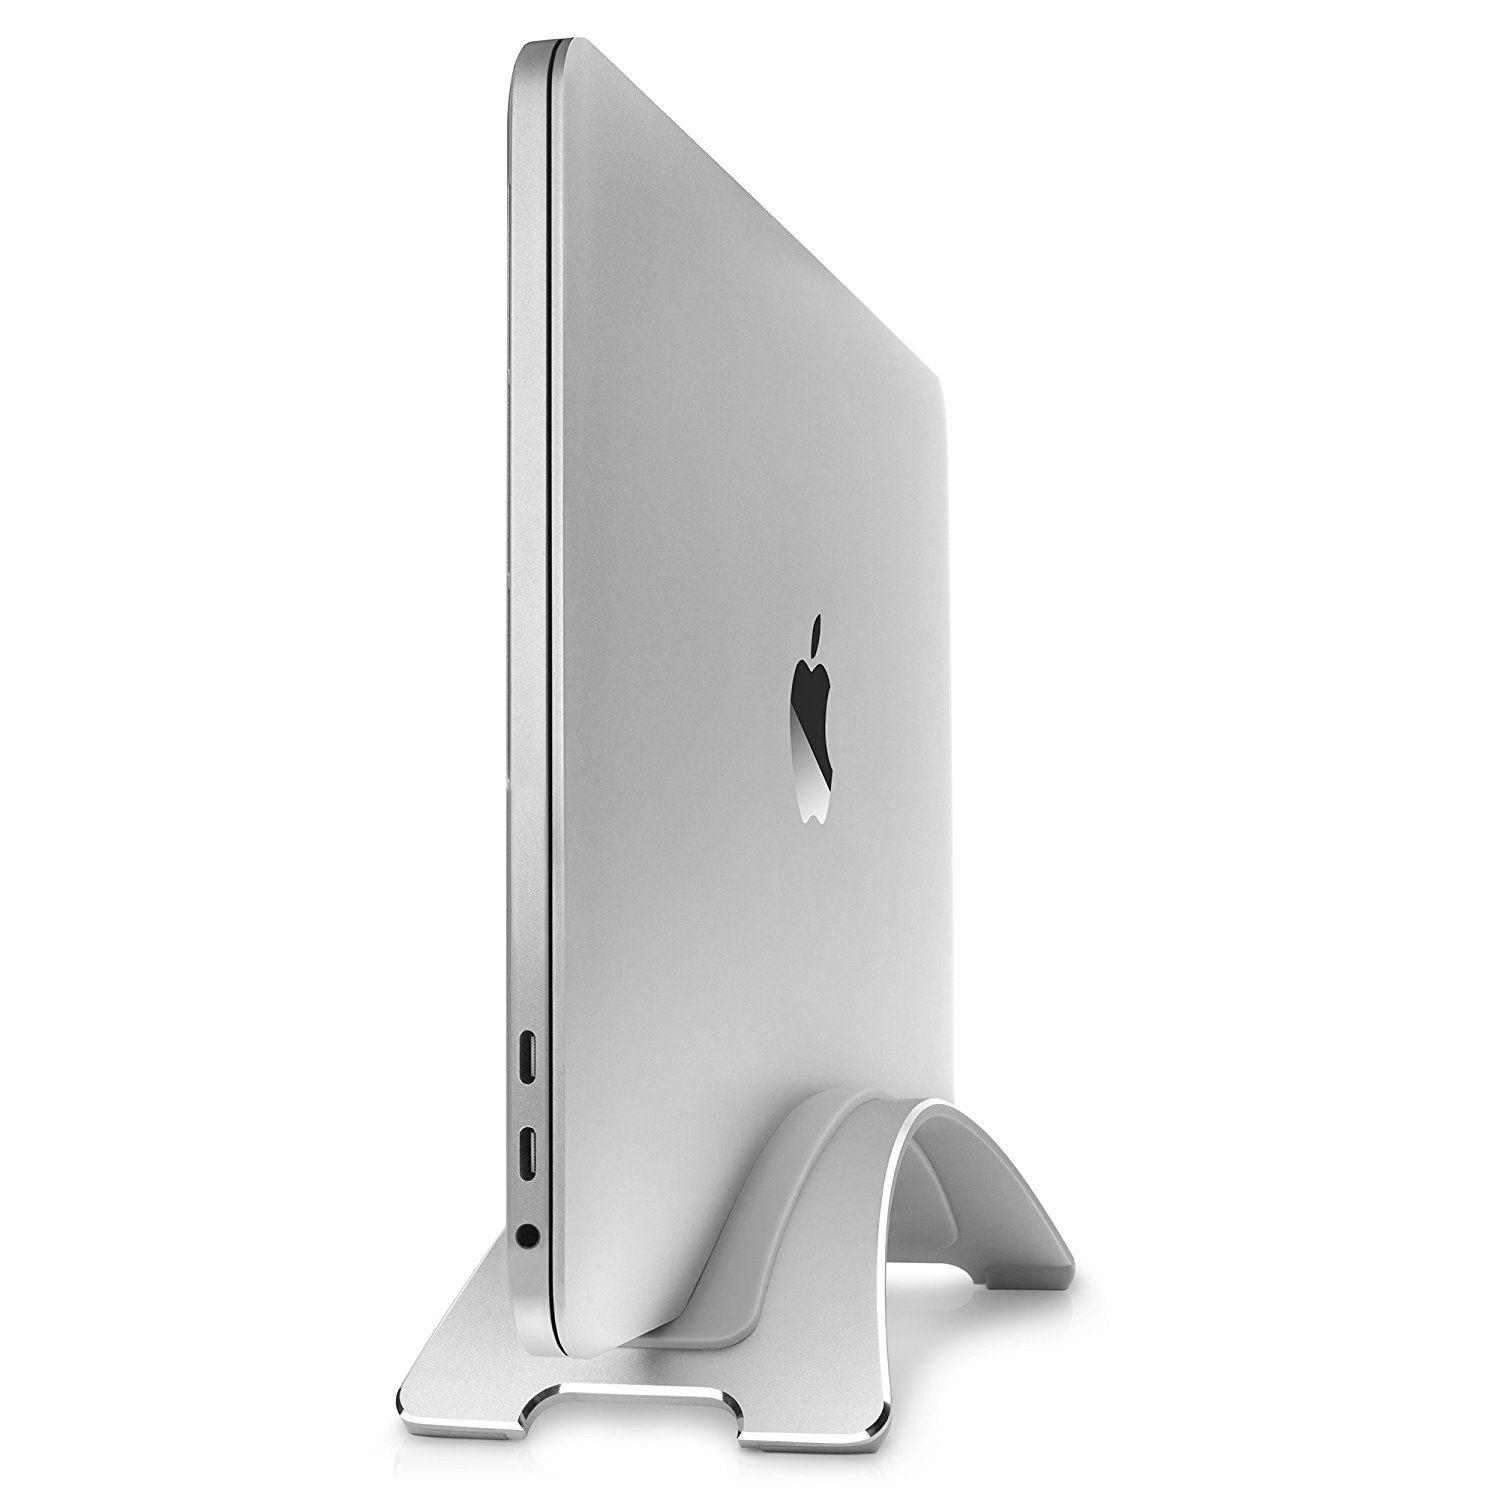 migliore stand verticale per macbook TwelveSouth Bookarc Stand per Macbook, Argento